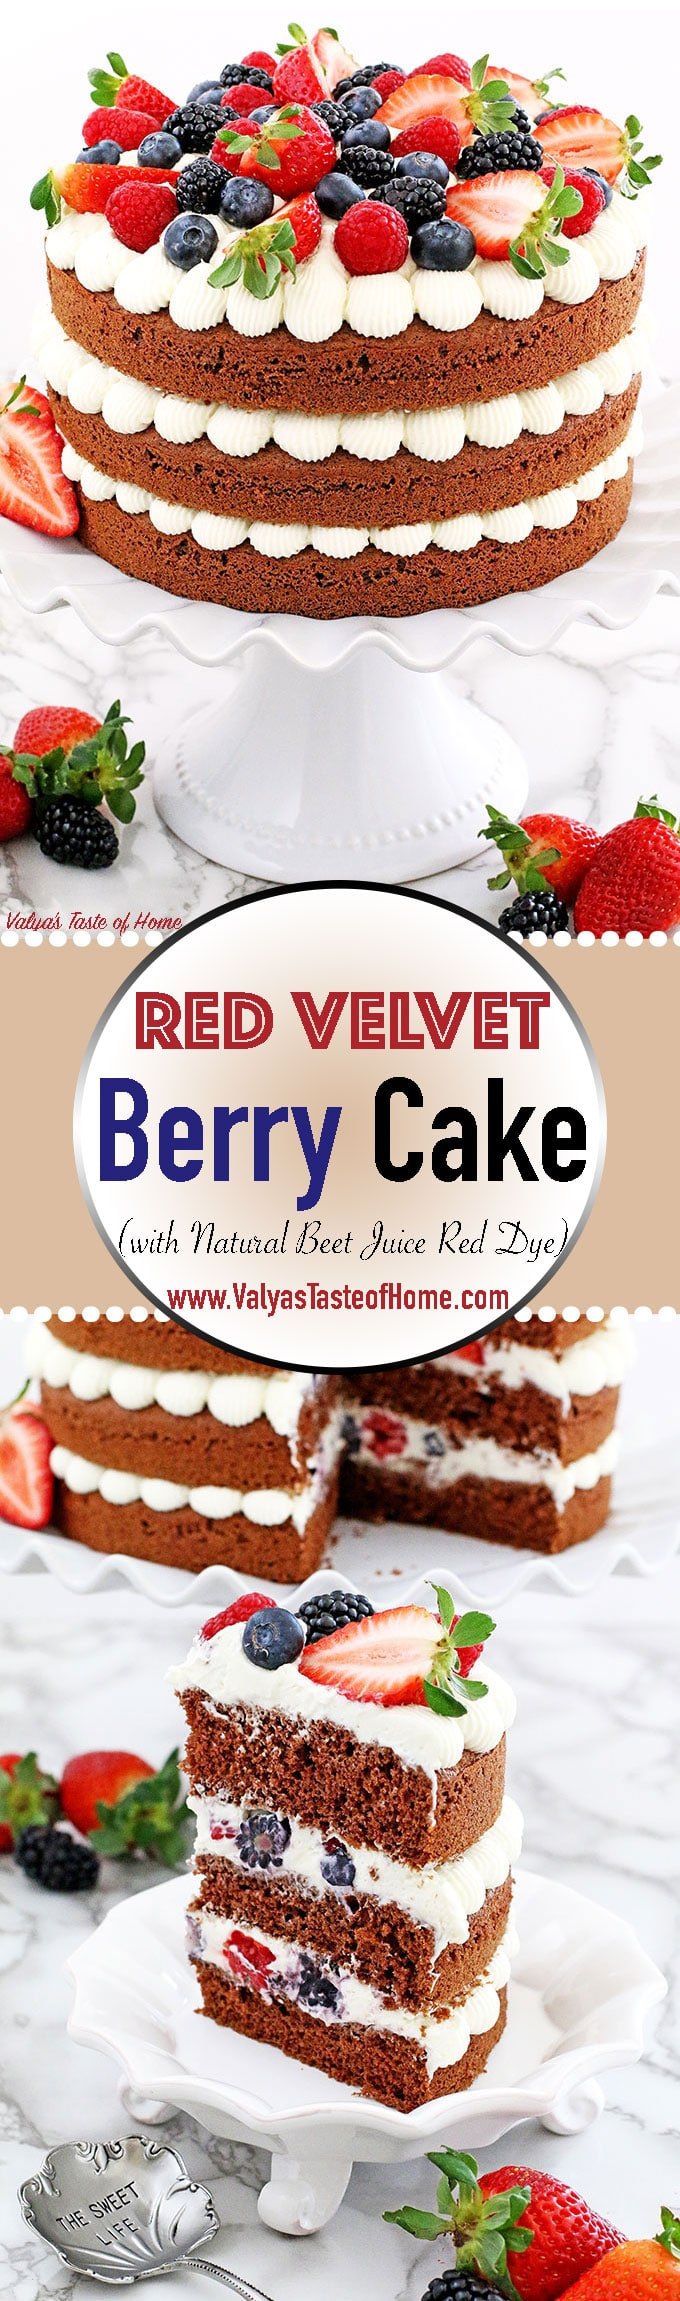 This Red Velvet Berry Cake recipe is super moist, pillow soft and is made with natural red beet juice instead of the typical red food coloring. The naked cake layers are piped with an absolutely delicious creamy and smooth cream cheese frosting, loaded with delicious berries. The cake looks absolutely stunning! Perfect for parties, anniversaries, or just simply enjoy a slice or two for a tea with a friend.